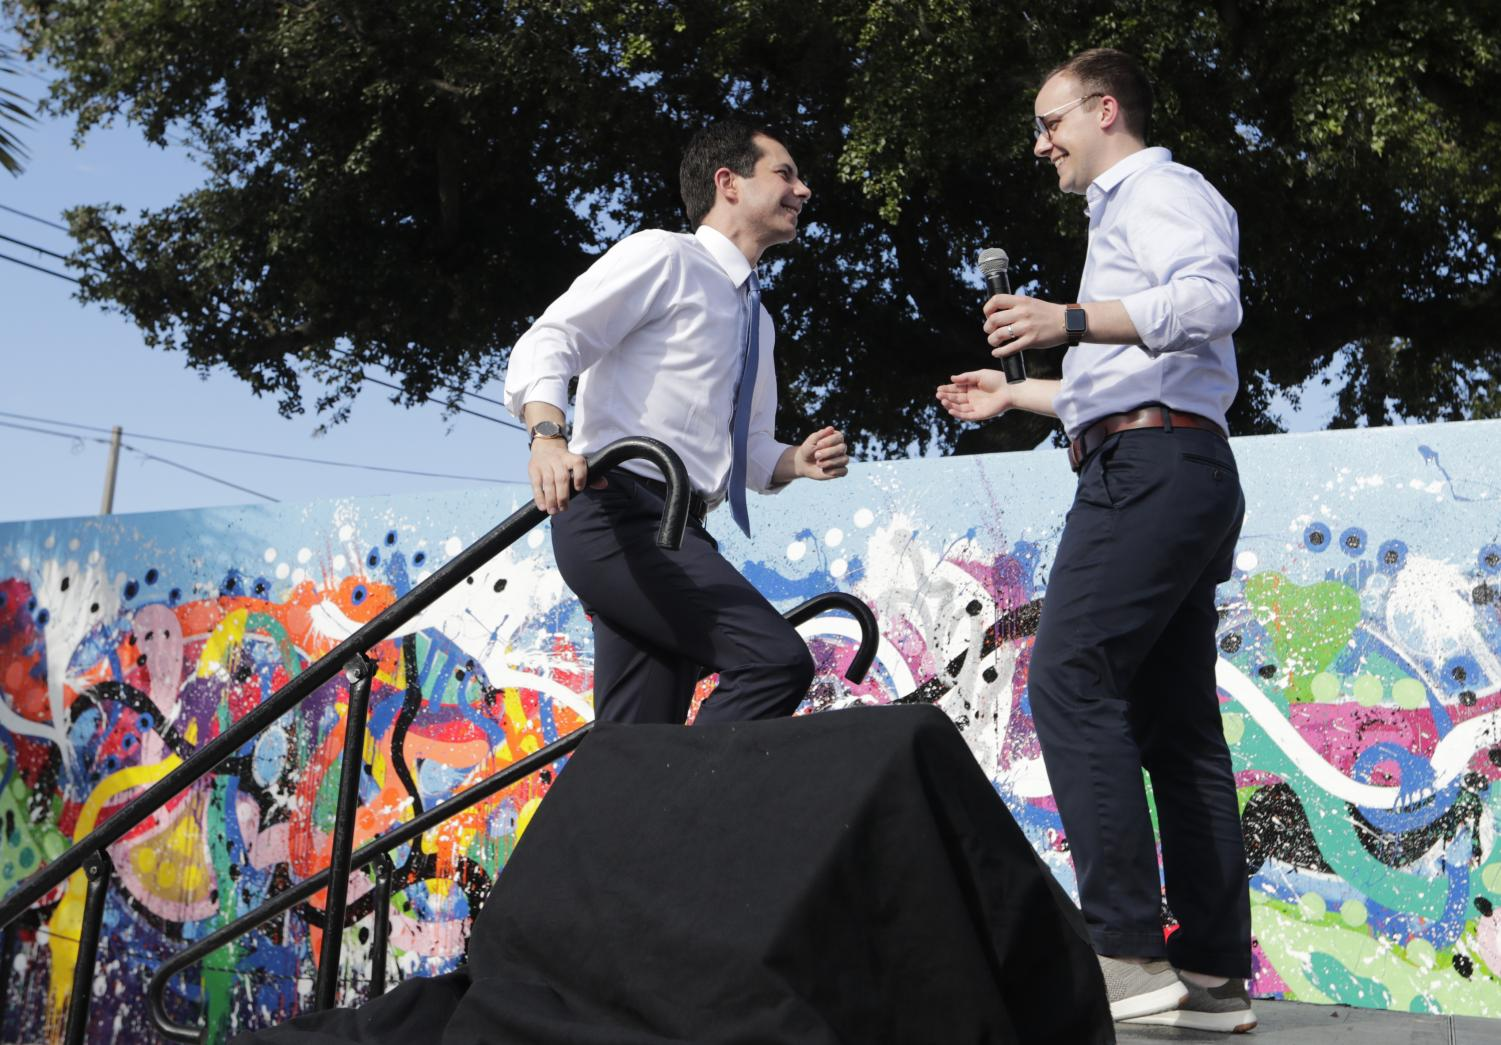 In this May 20, 2019, file photo, Democratic presidential candidate Pete Buttigieg, the mayor of South Bend, Ind., left, is introduced by his husband Chasten Buttigieg, right, during a fundraiser at the Wynwood Walls, in Miami. Buttigieg knows firsthand the burden of six-figure student loan debt. He and his husband have loans of more than $130,000, placing them in the ranks of the 43 million Americans who owe federal student debt.